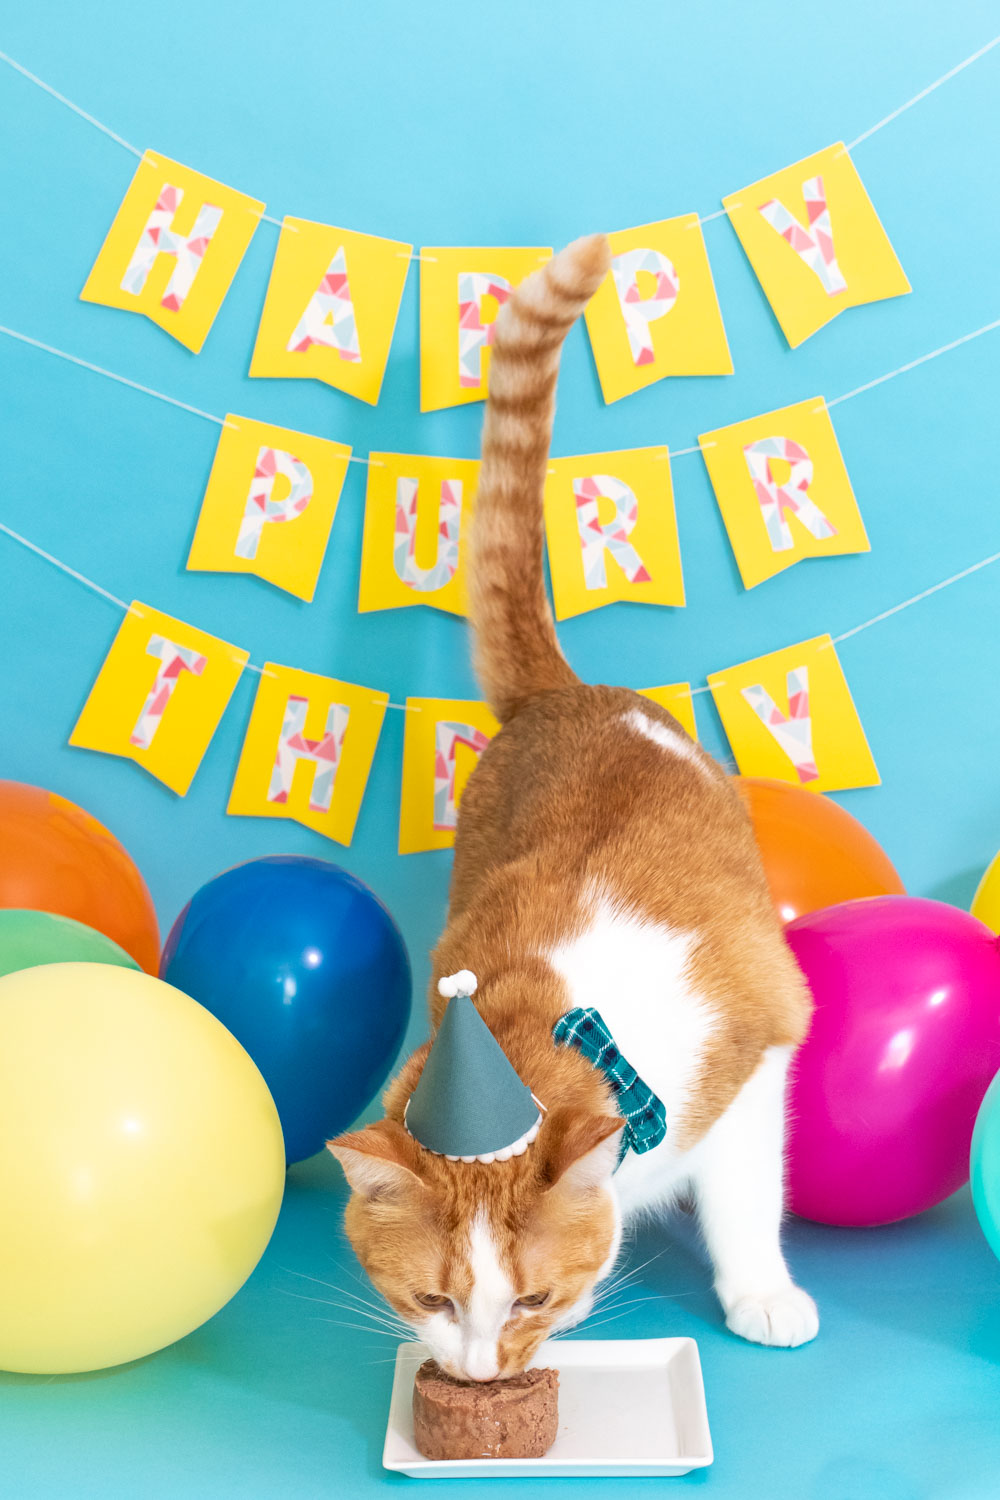 cat eating in mini party hat for cat birthday party